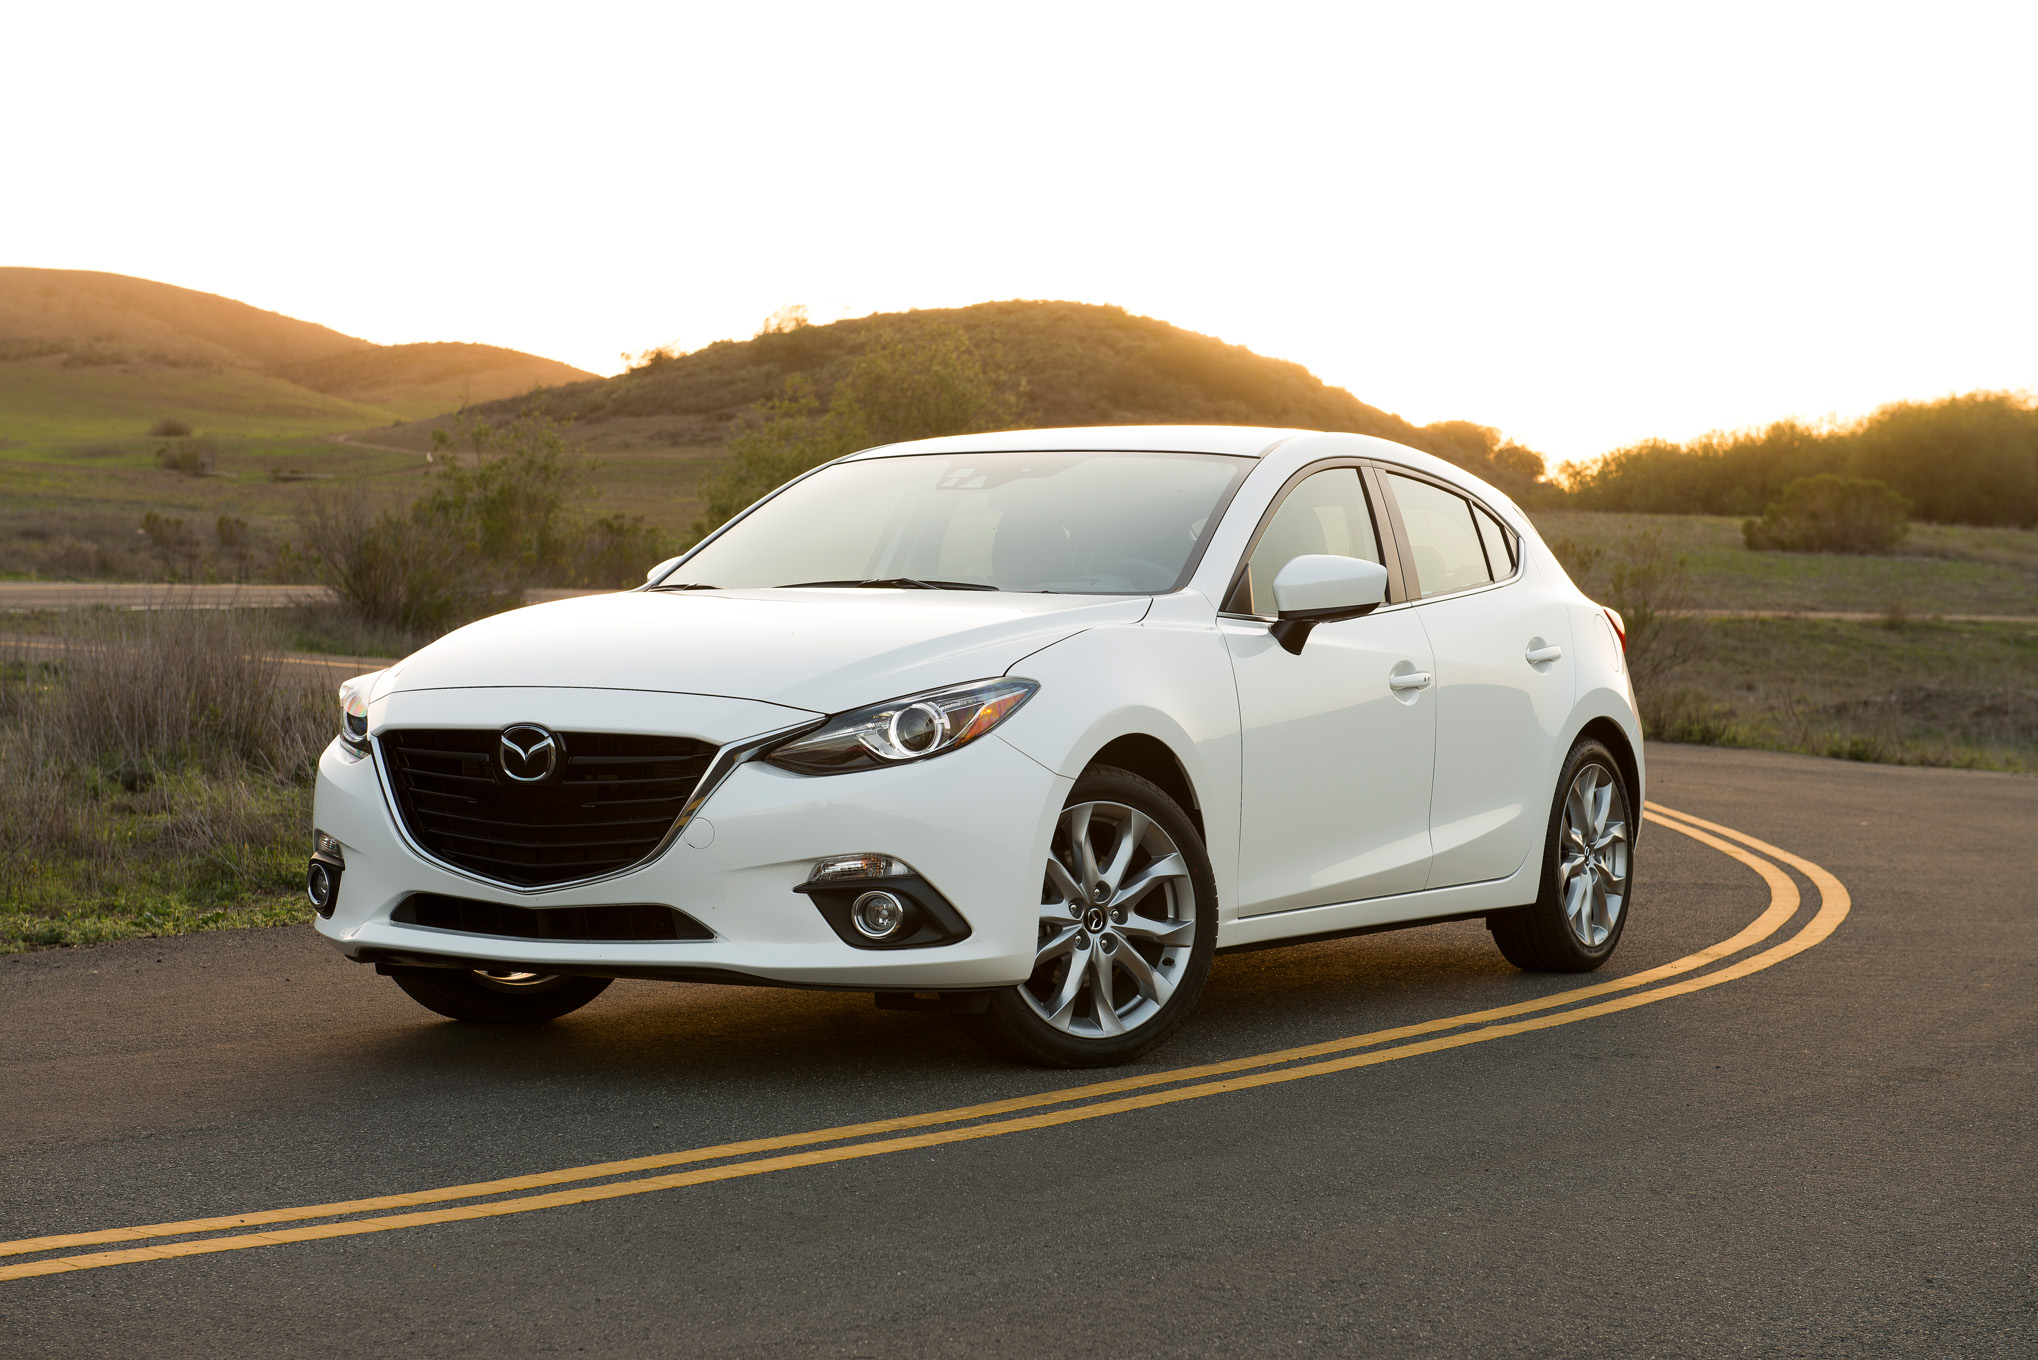 2014 Mazda3 S GT Long Term Arrival